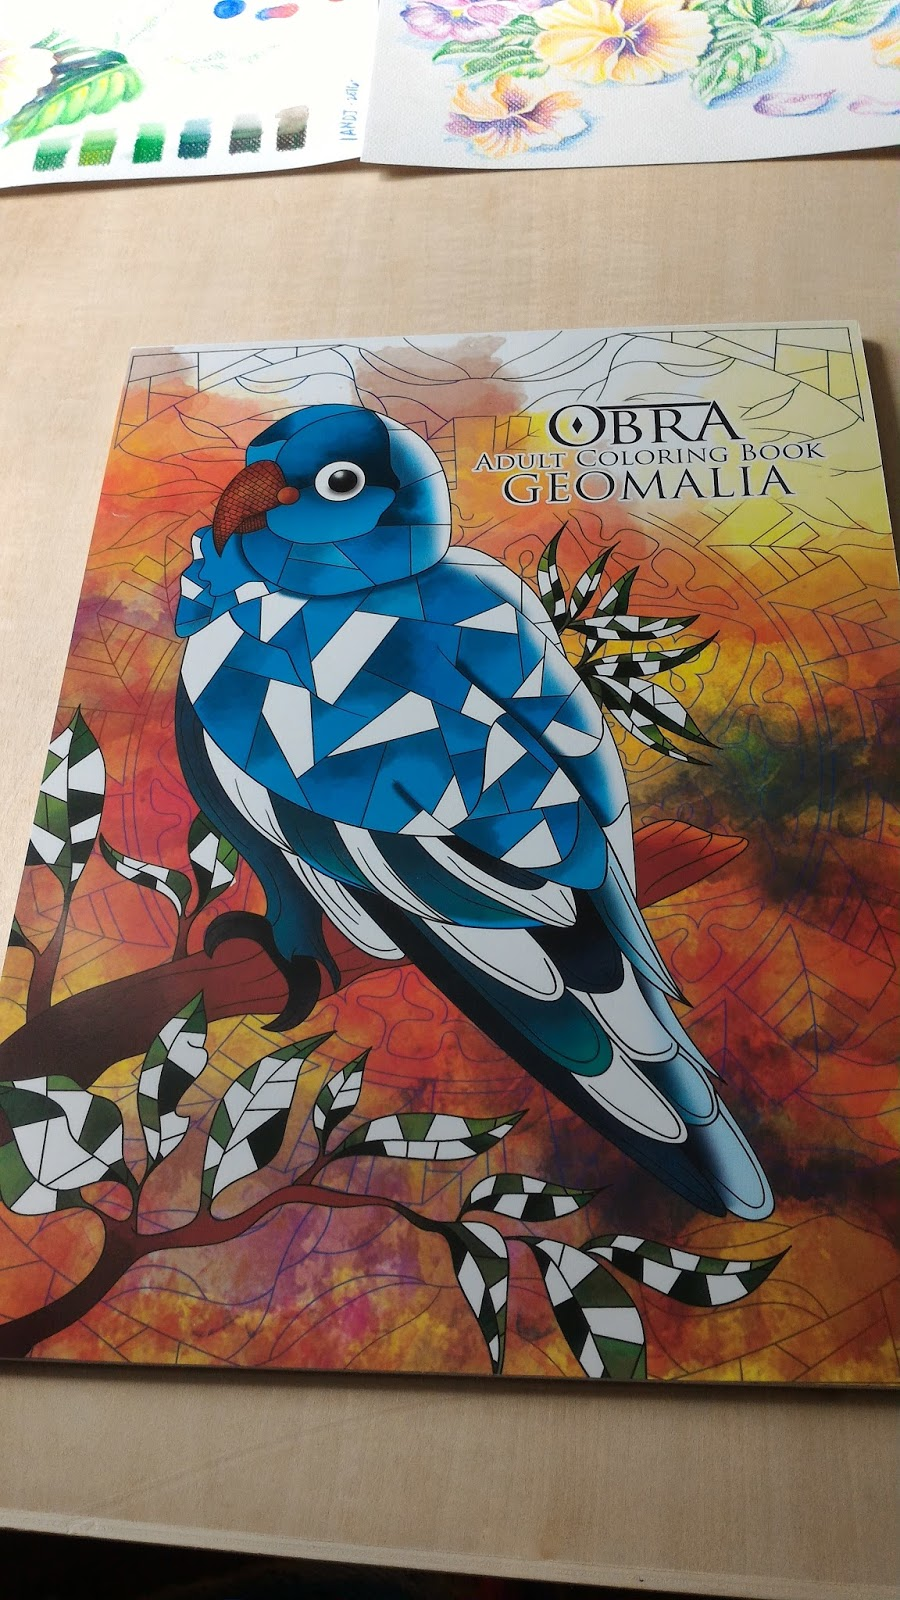 This Is The Cover Of OBRA Geomalia